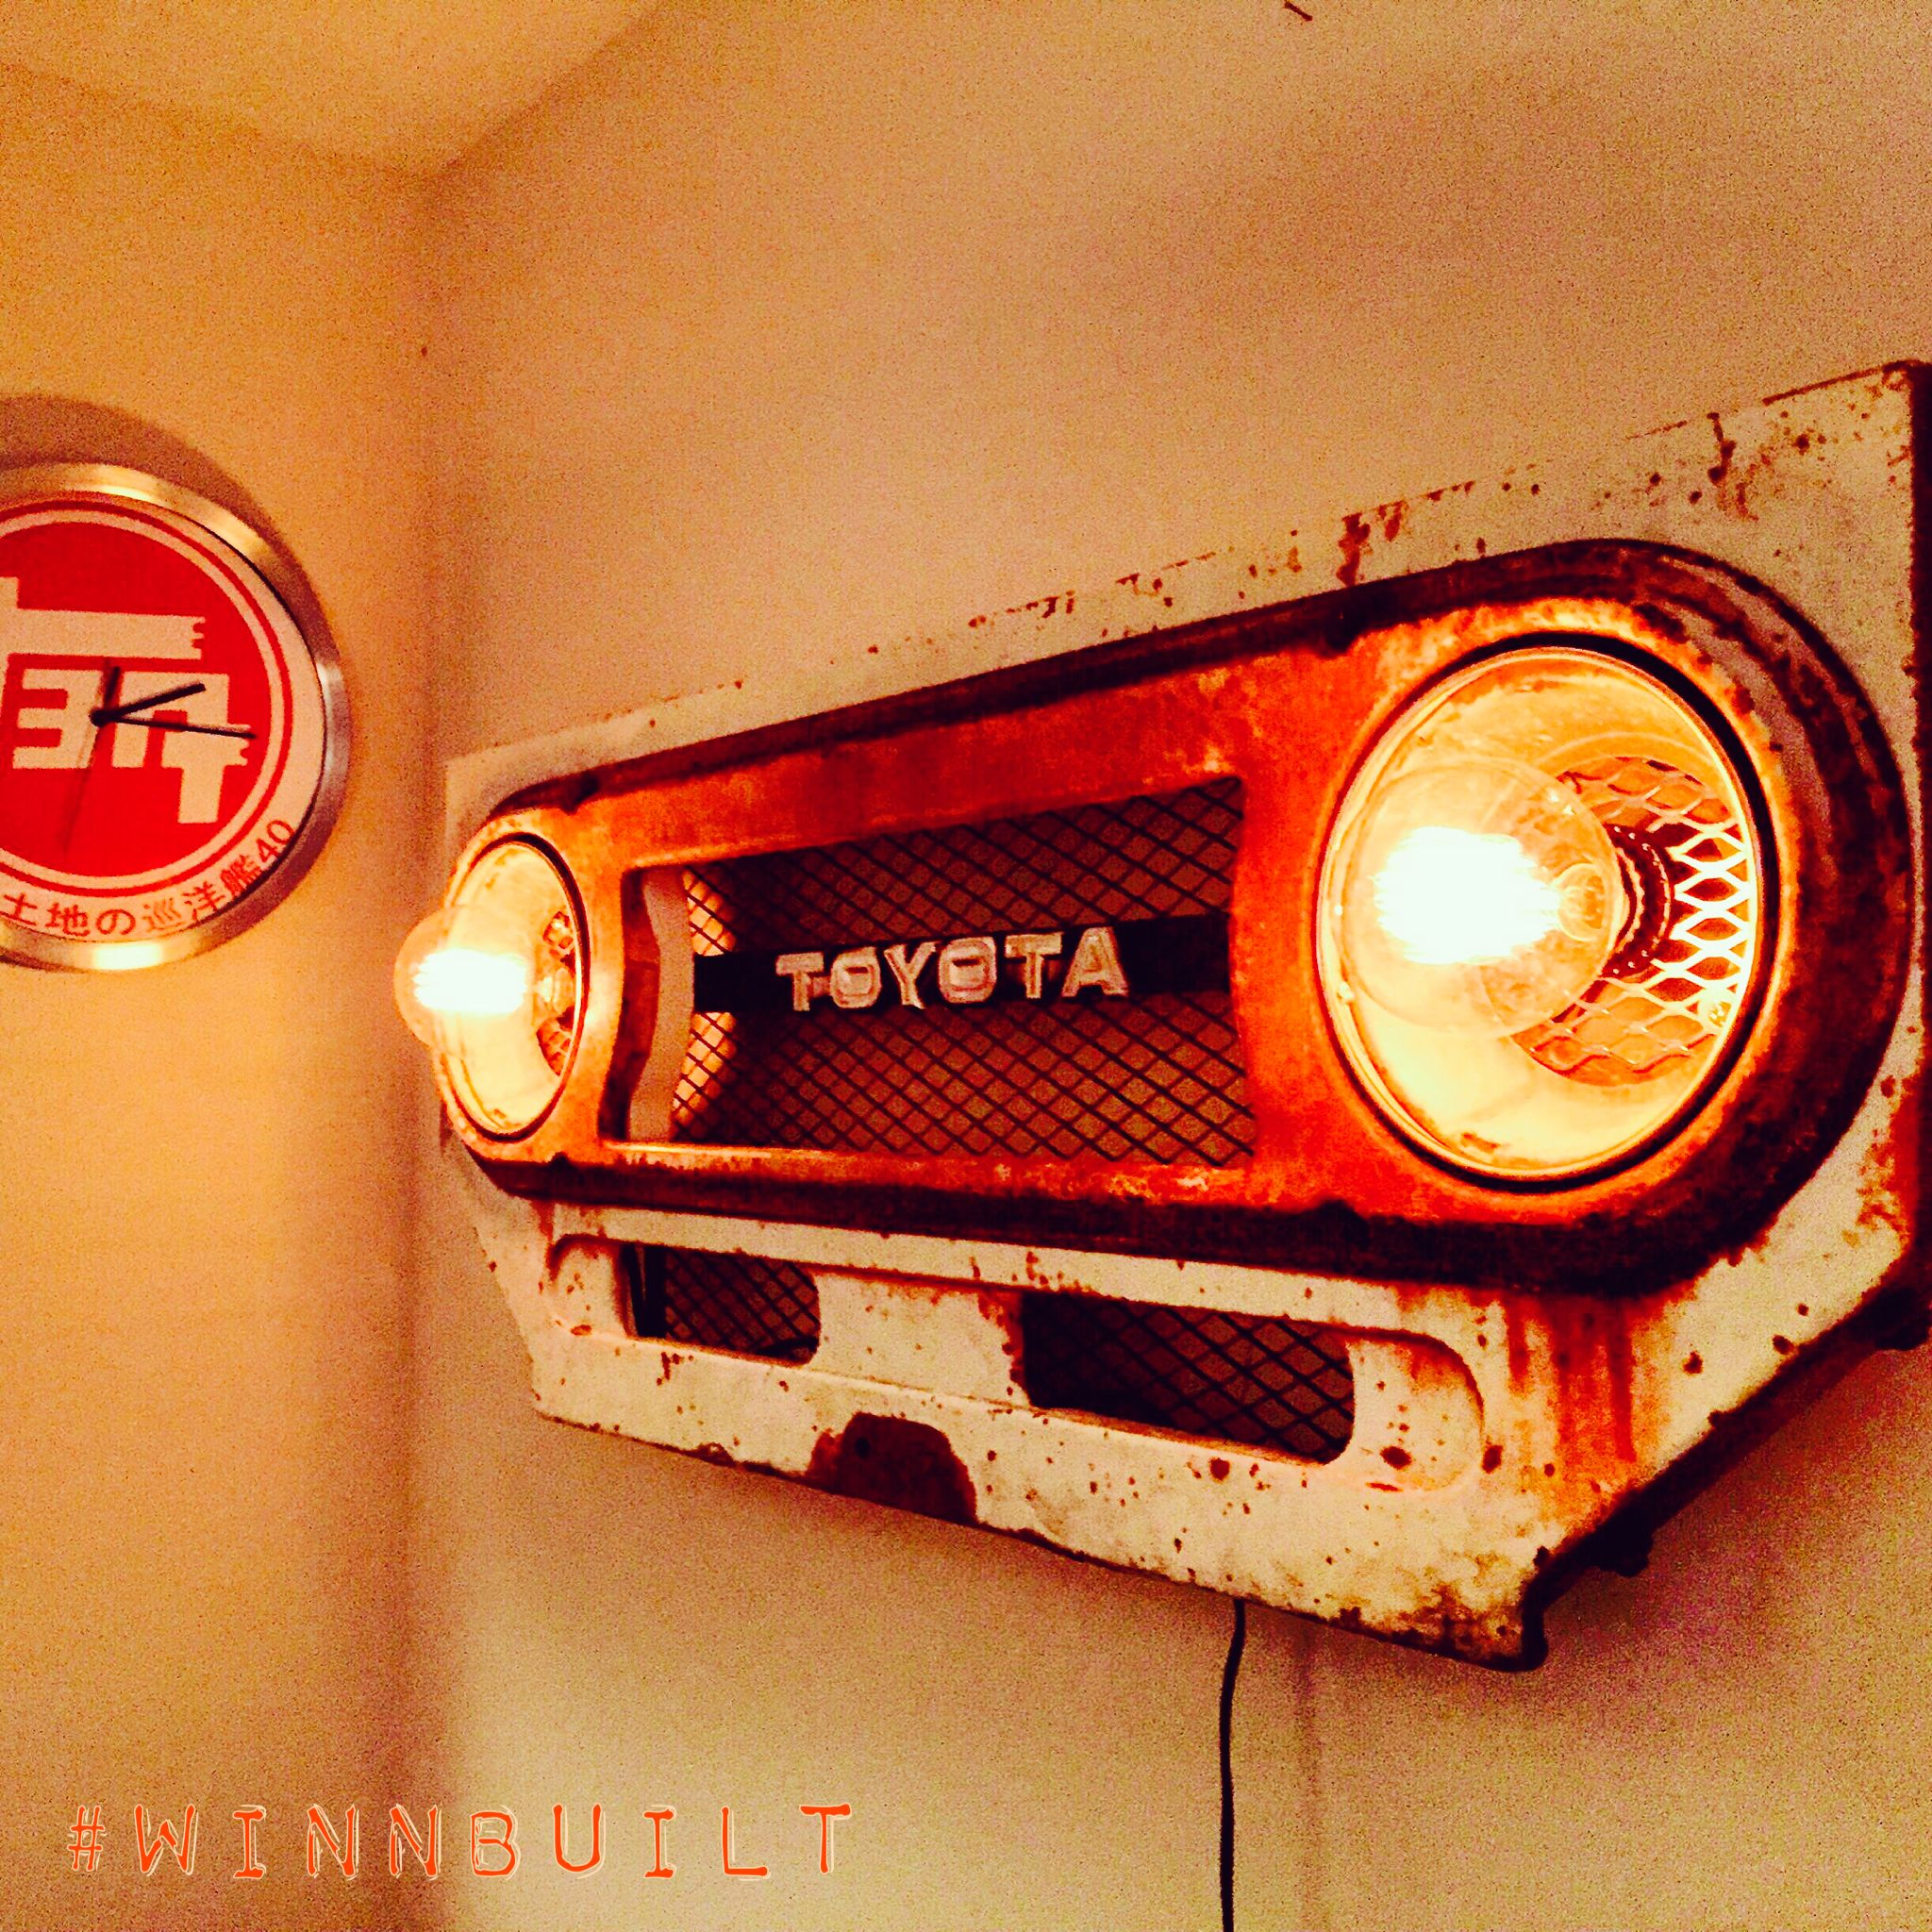 Toyota Garage Decor: Inspired By A Vintage Jeep Wall Hanger, But Being A Land